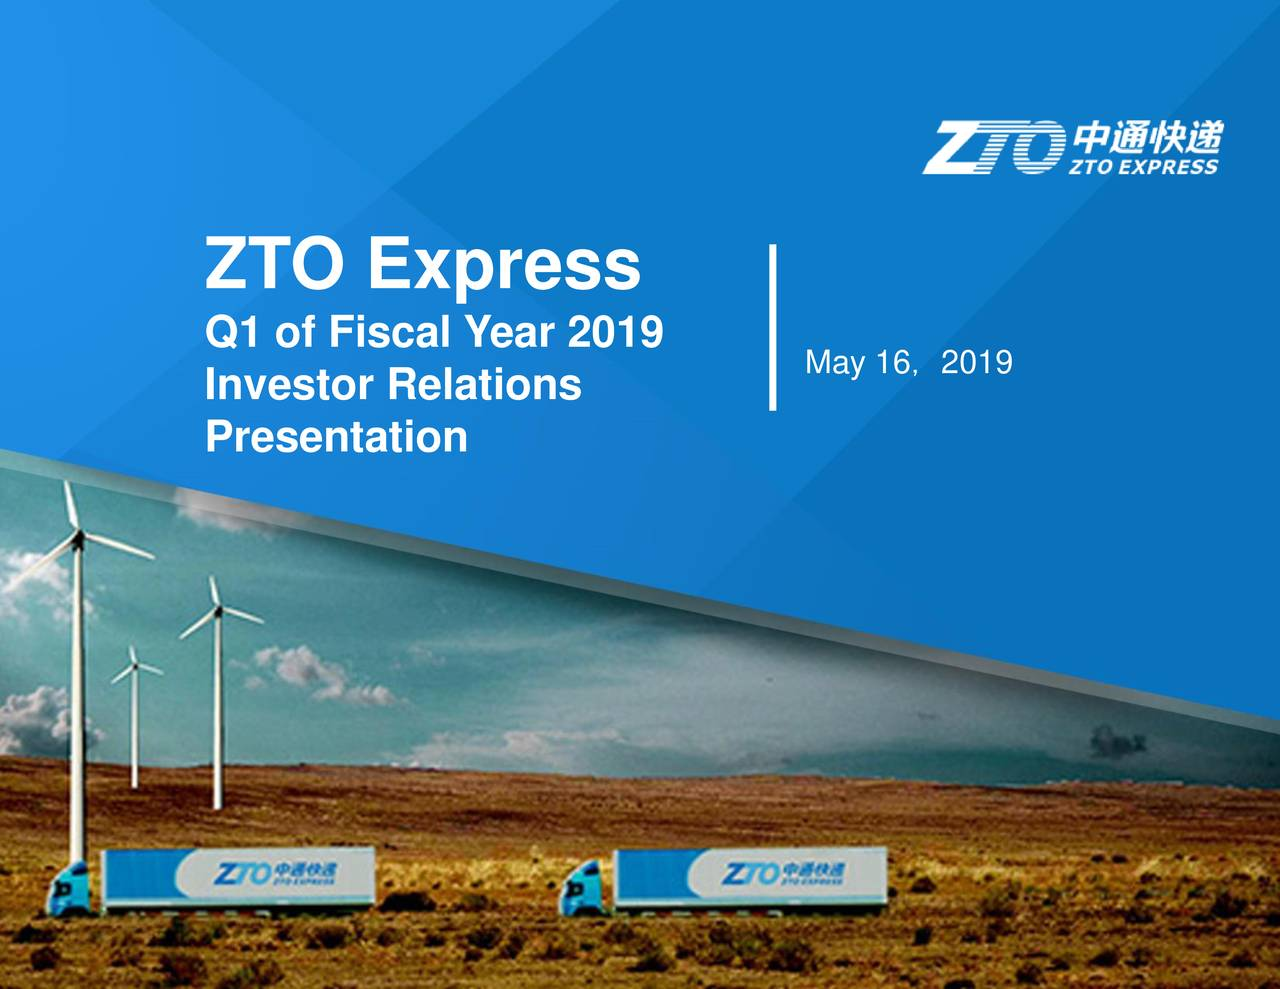 Q1 of Fiscal Year 2019 Investor Relations May 16, 2019 Presentation